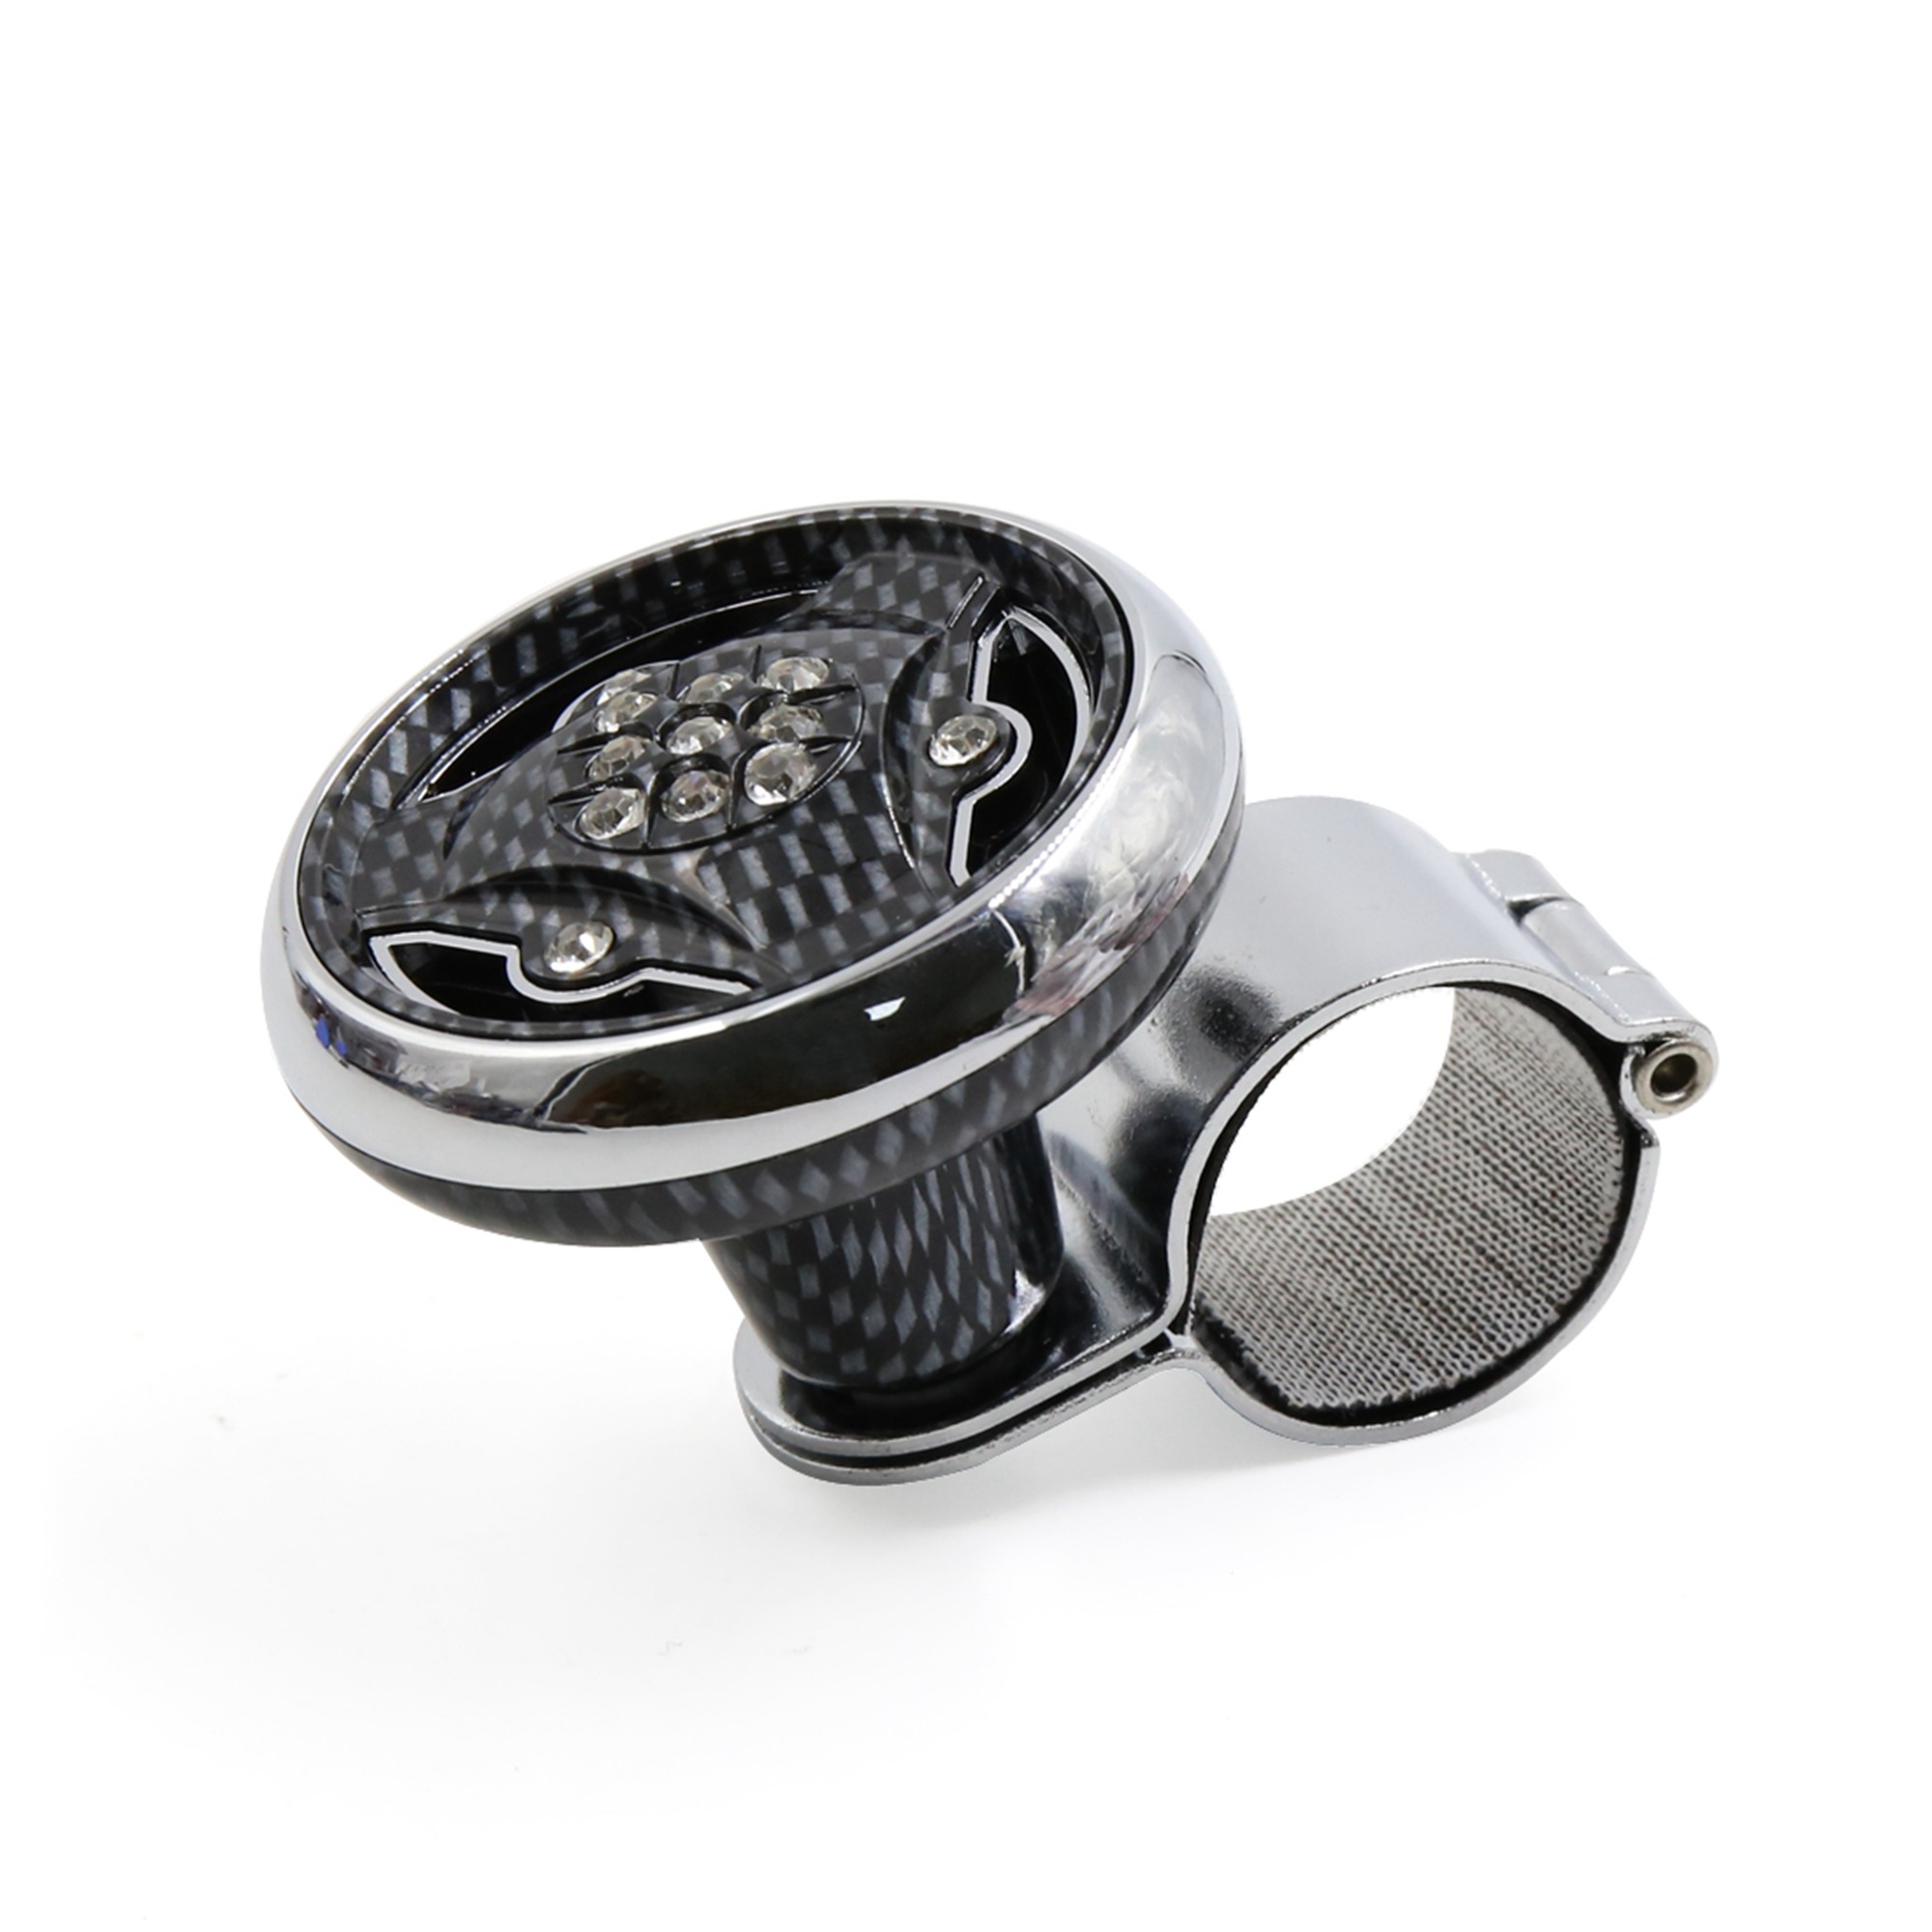 Rhinestone Decor Carbon Fiber Pattern Steering Wheel Spinner Knob Power Handle for Auto Car